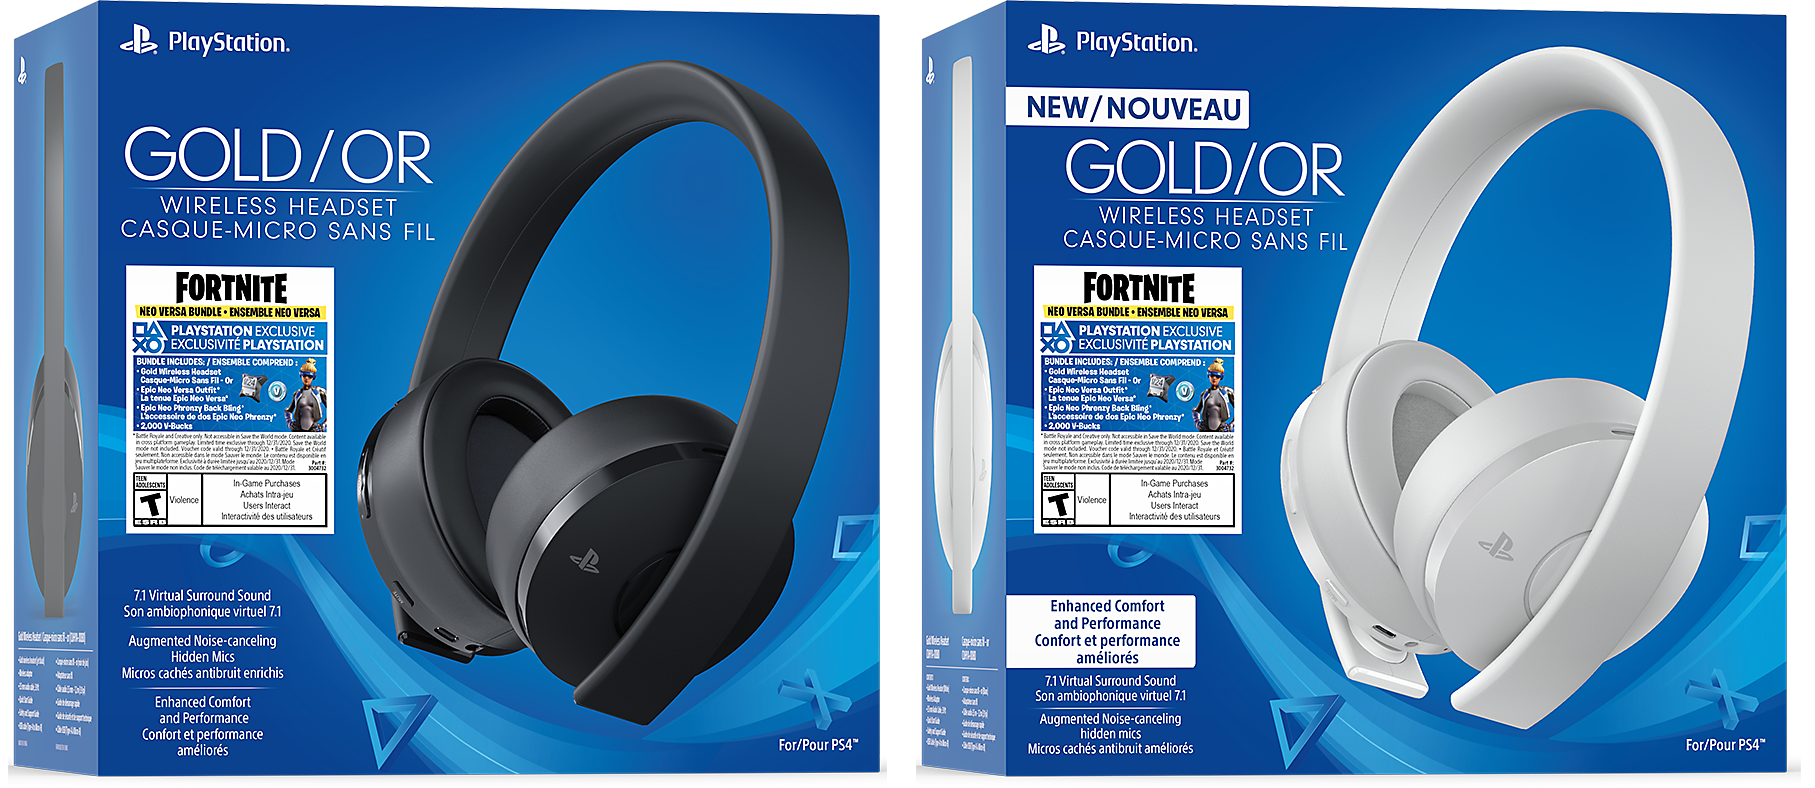 Gold Wireless Headset Fortnite bundle